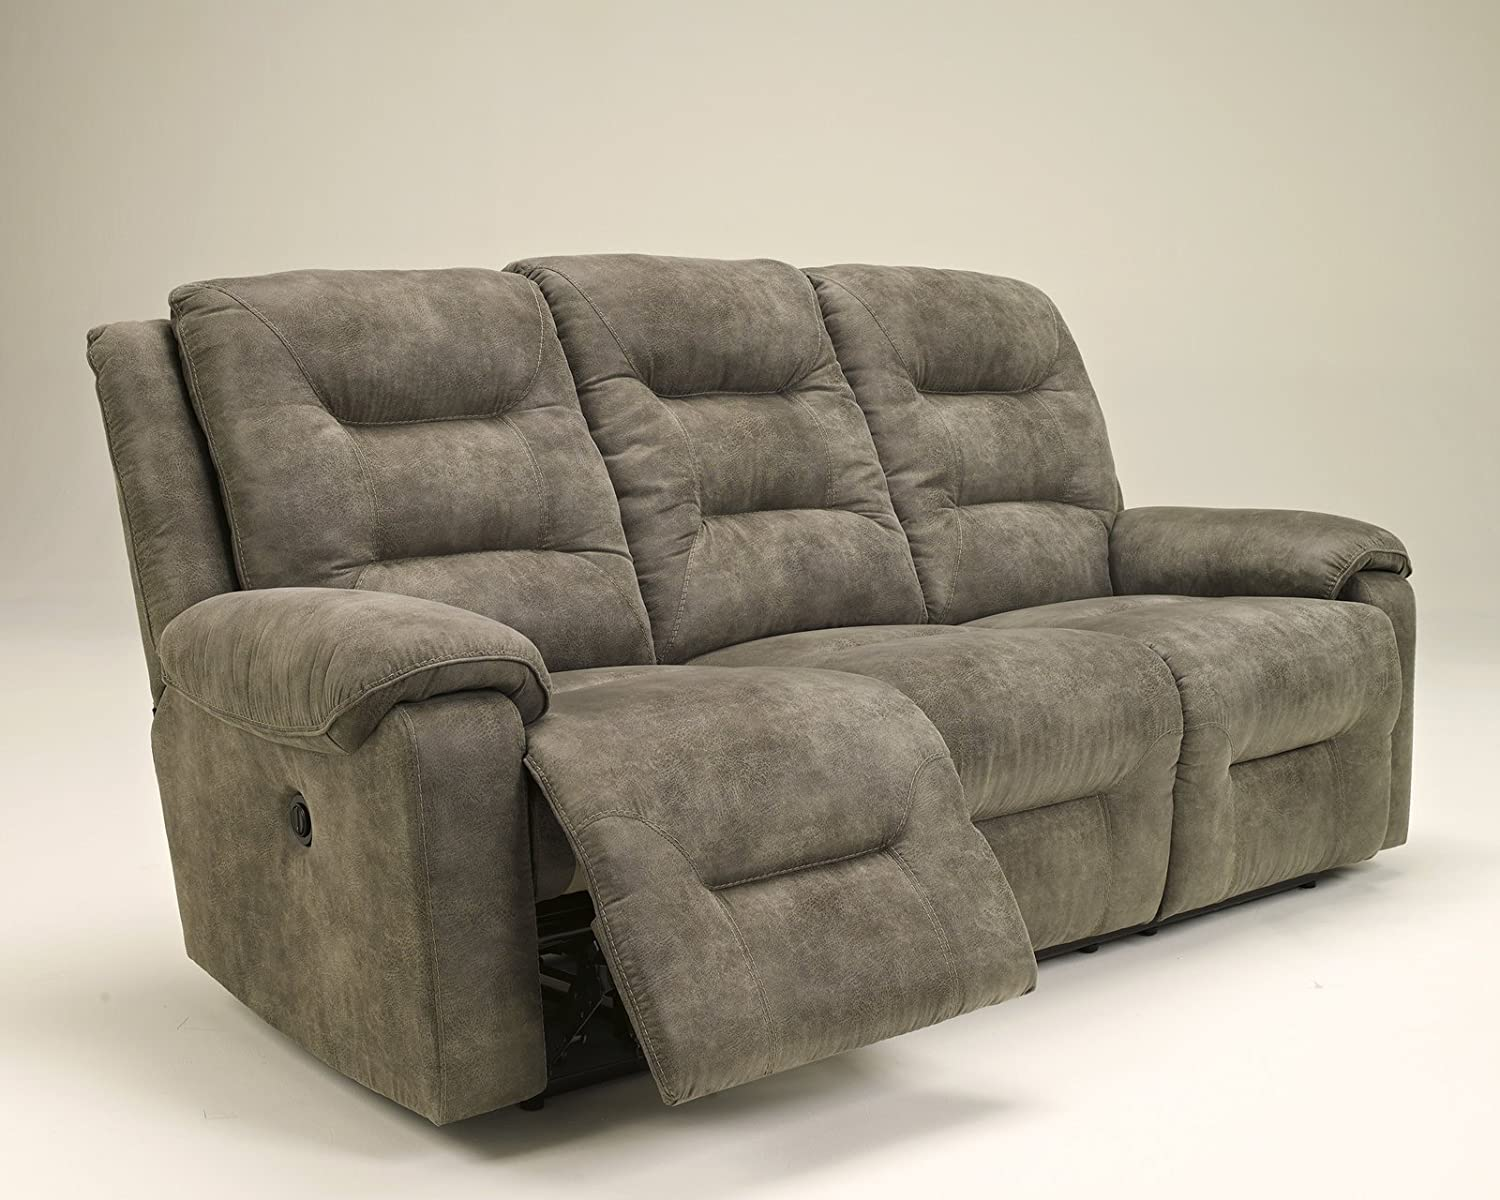 Amazon.com Ashley Furniture Signature Design - Rotation Recliner Sofa - Power Reclining Couch - Smoke Gray Brown Kitchen u0026 Dining & Amazon.com: Ashley Furniture Signature Design - Rotation Recliner ... islam-shia.org